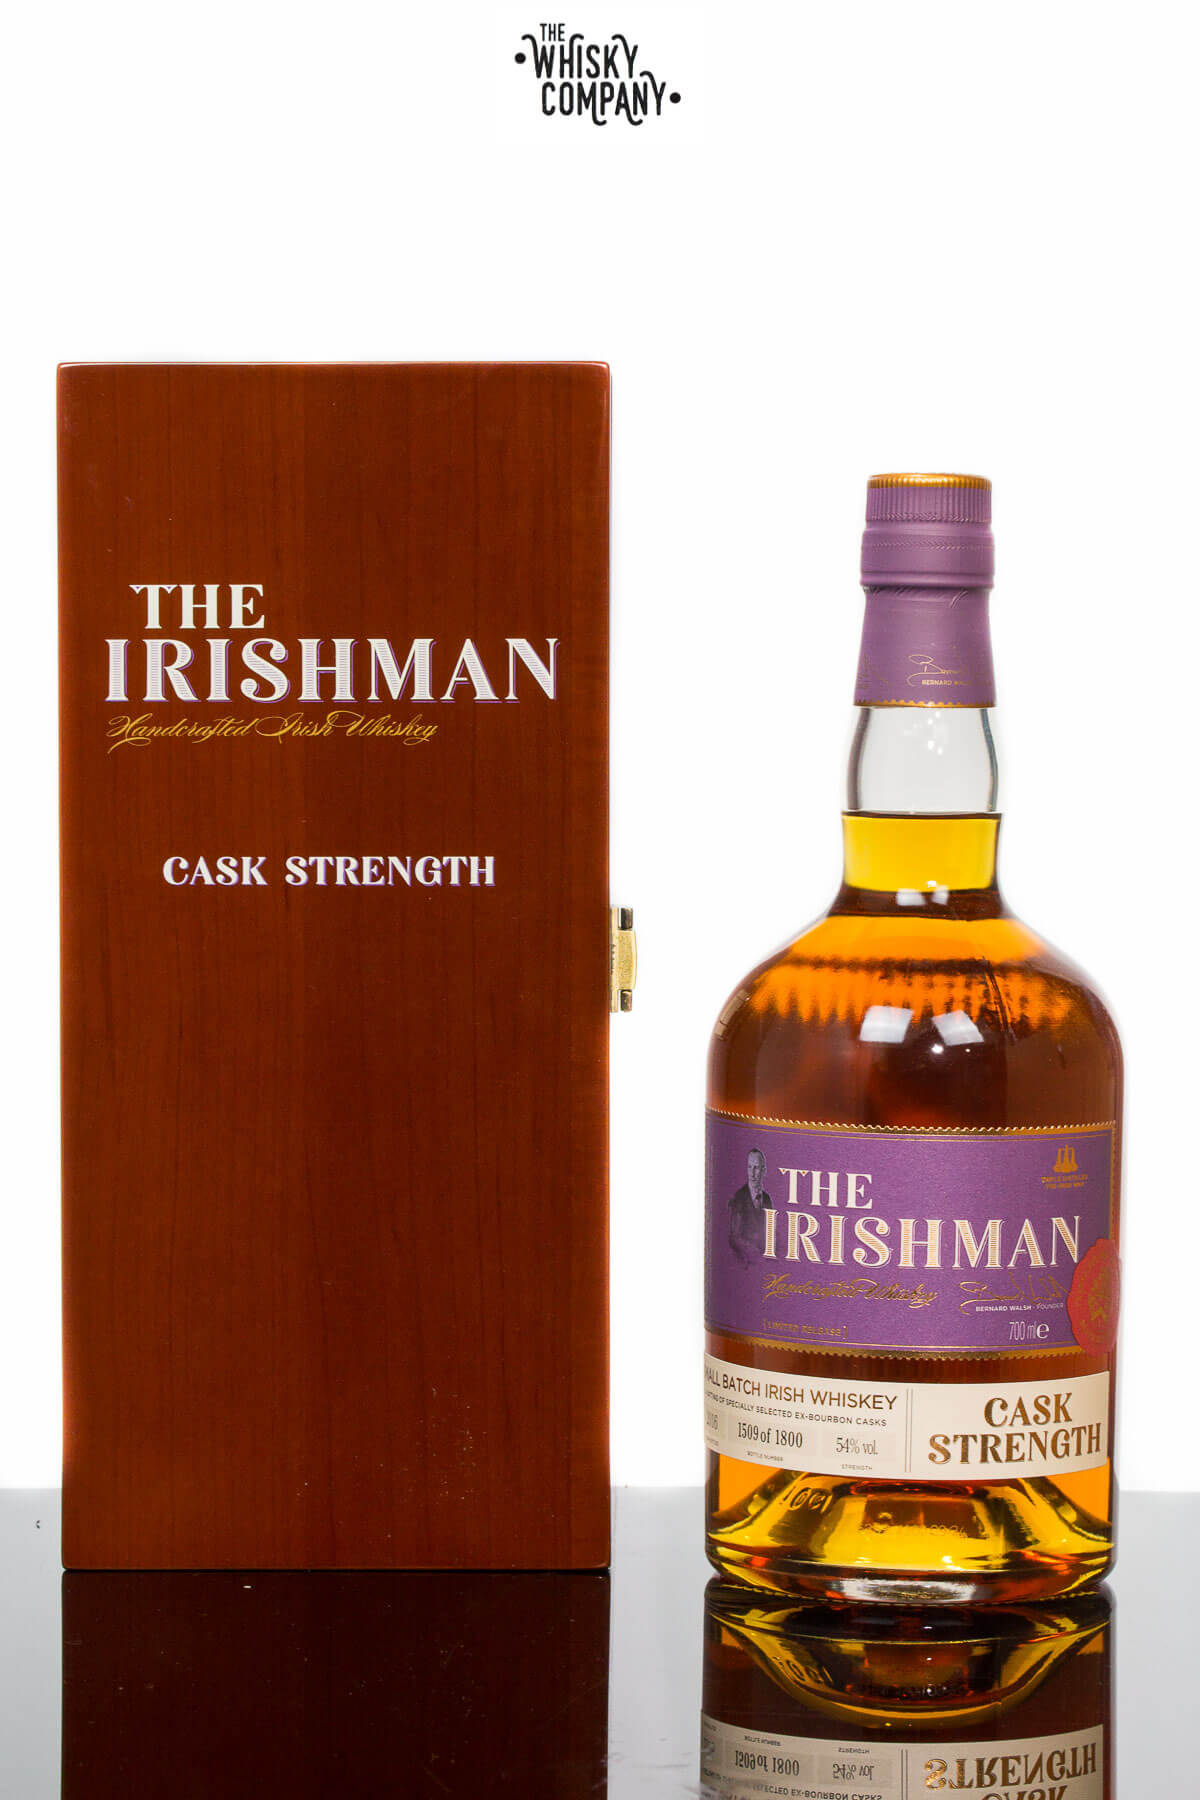 The 2016 Irishman Cask Strength Whiskey